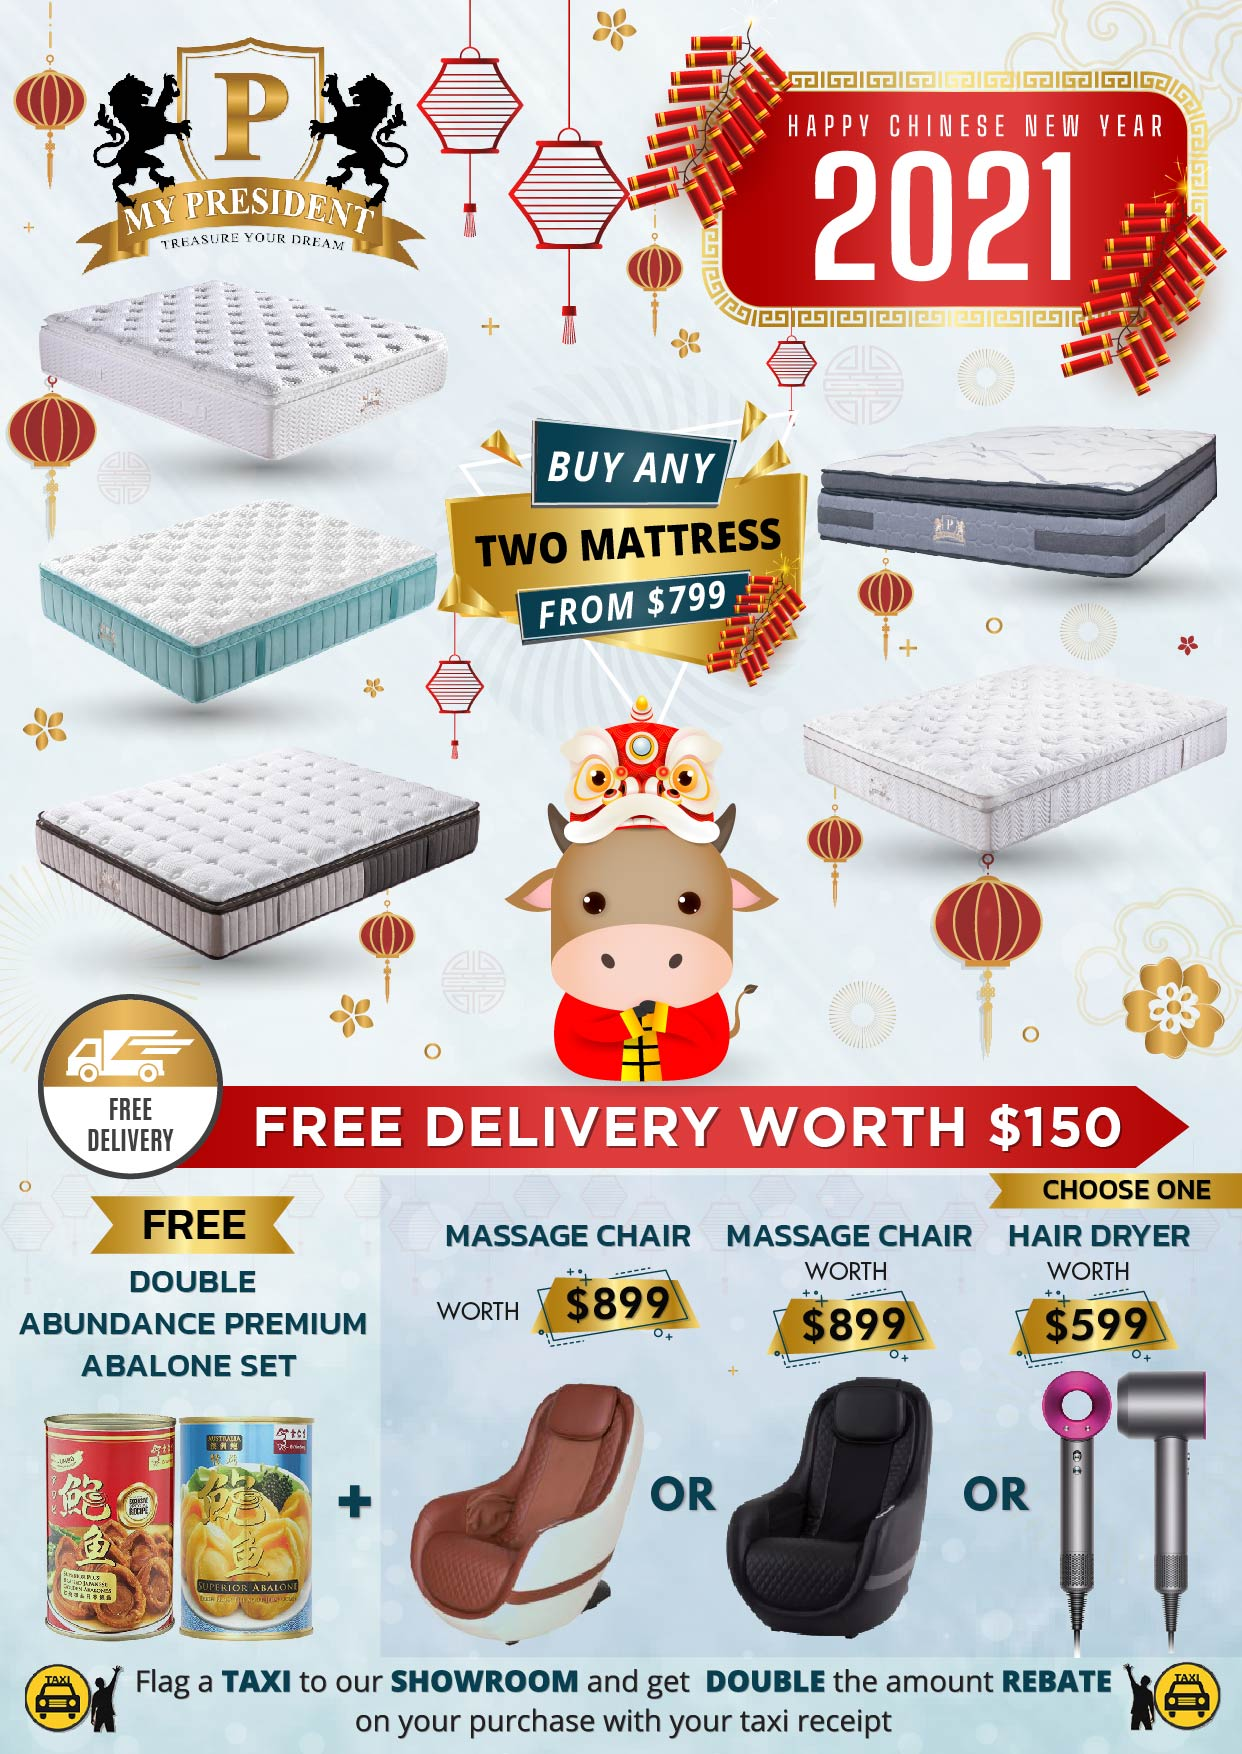 twomattress-maasagechair-chinese-newyear-promotions